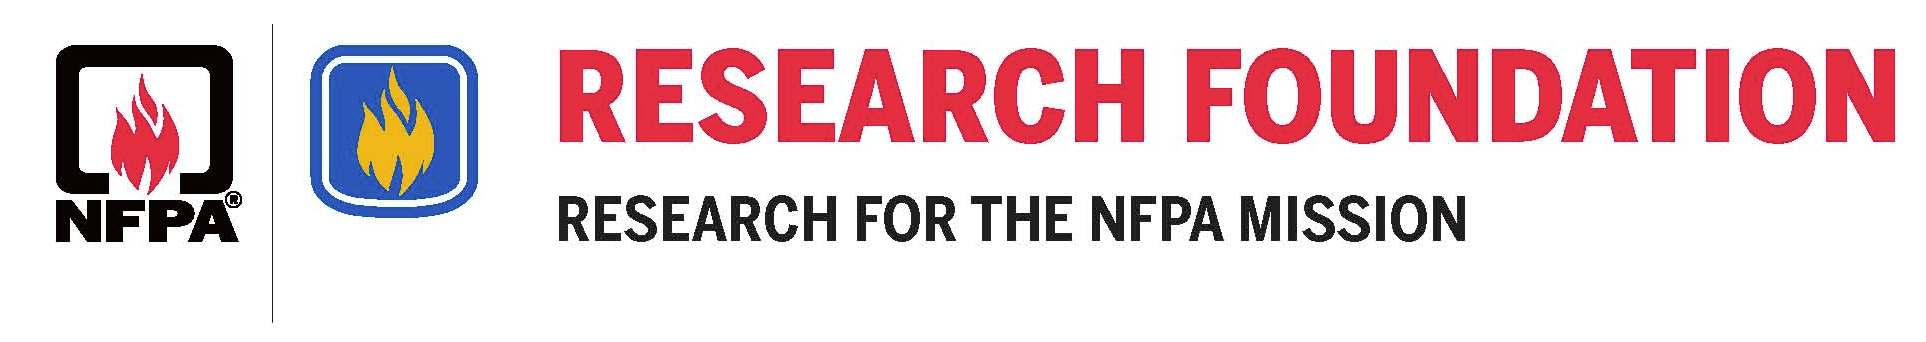 Research Foundation banner